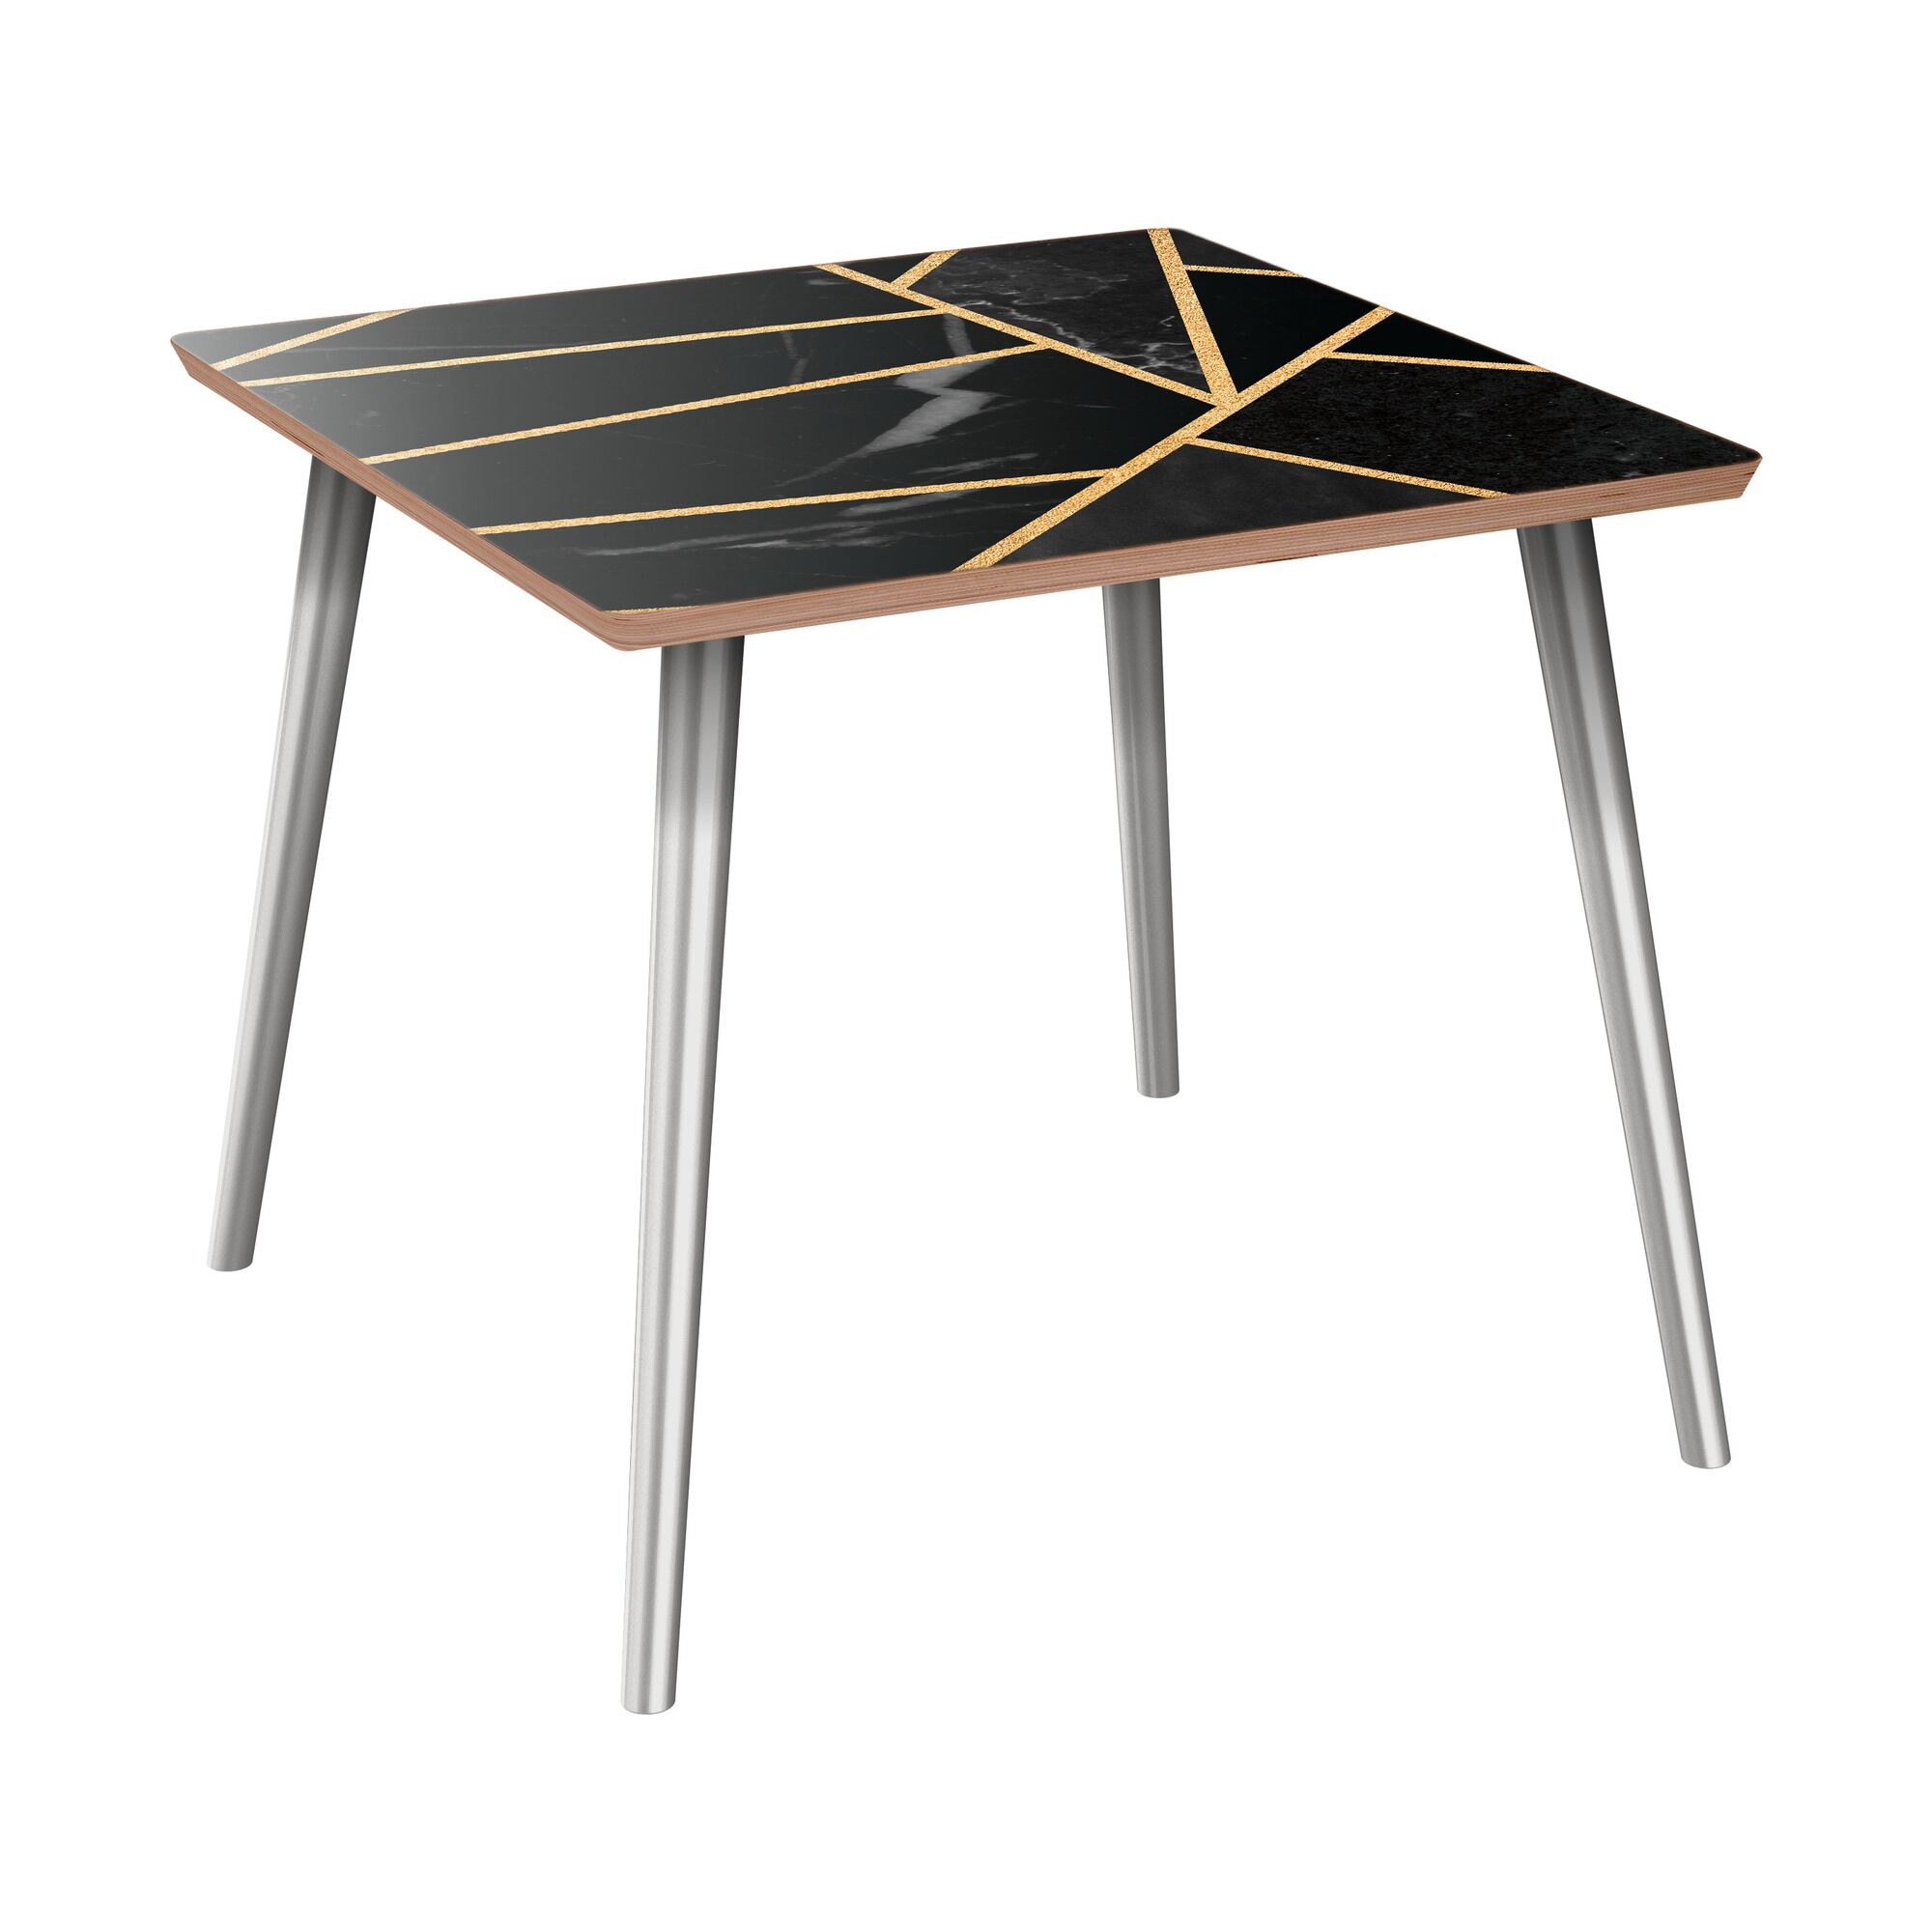 Mcgoldrick End Table Table Base Color: Chrome, Table Top Color: Walnut/Black